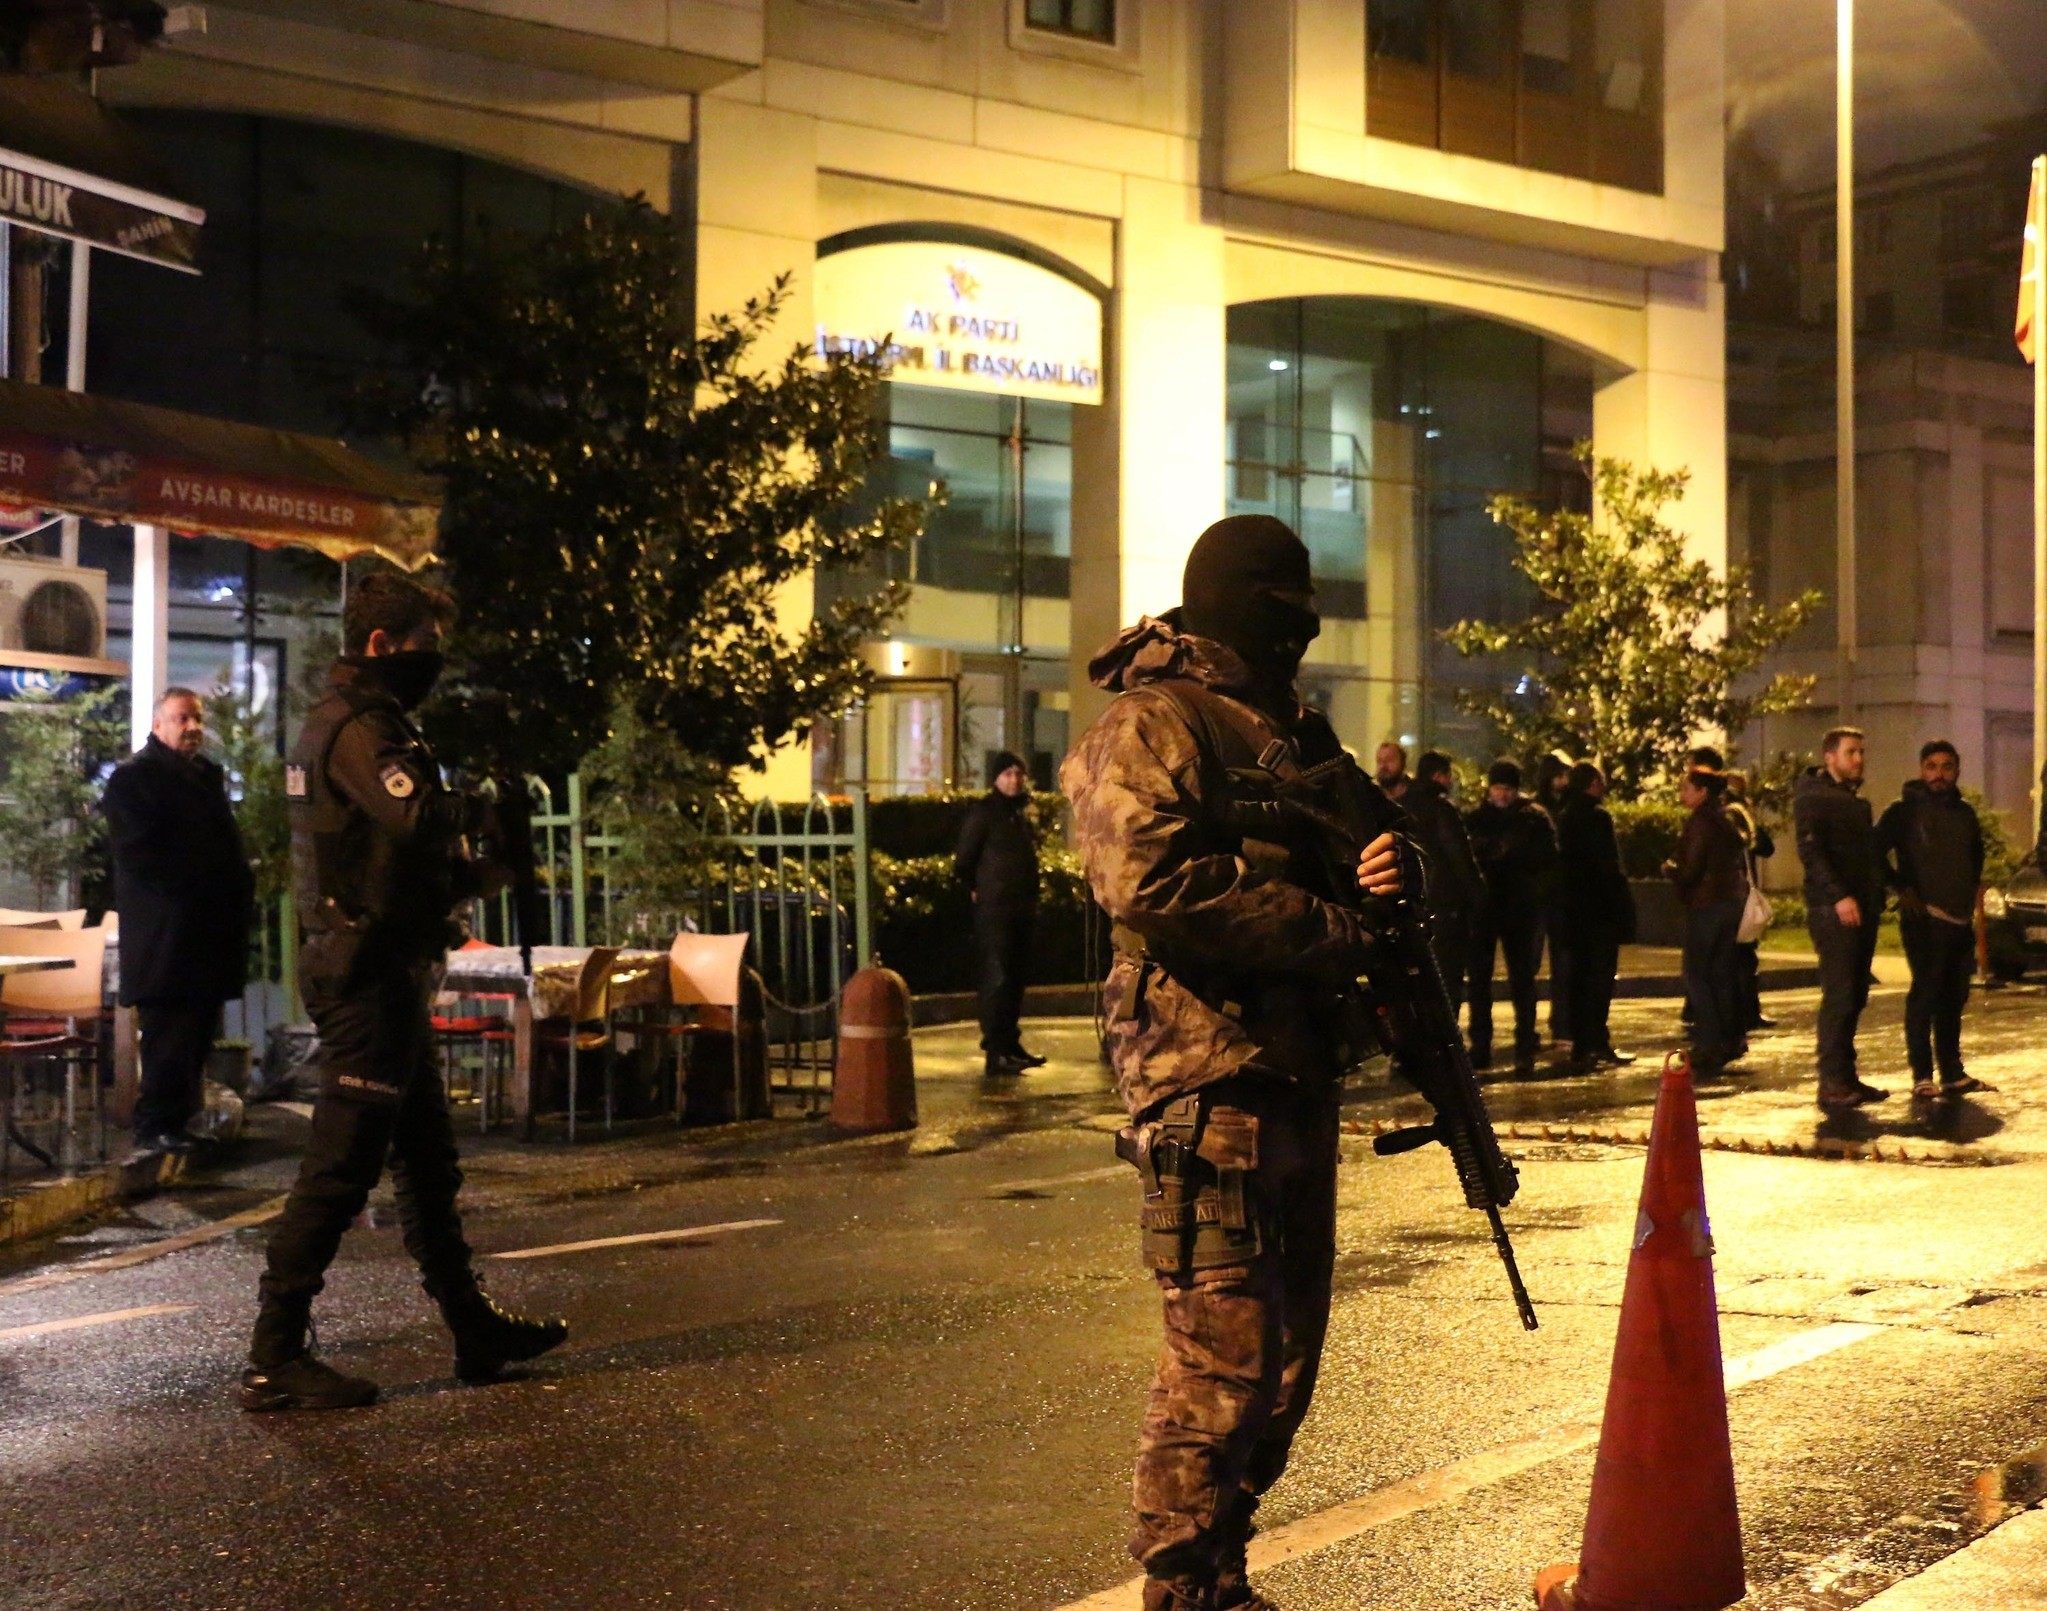 Turkish security forces wait outside the Istanbul headquarters of AK Party in Su00fctlu00fcce, Istanbul on 20.01.2017. (DHA Photo)